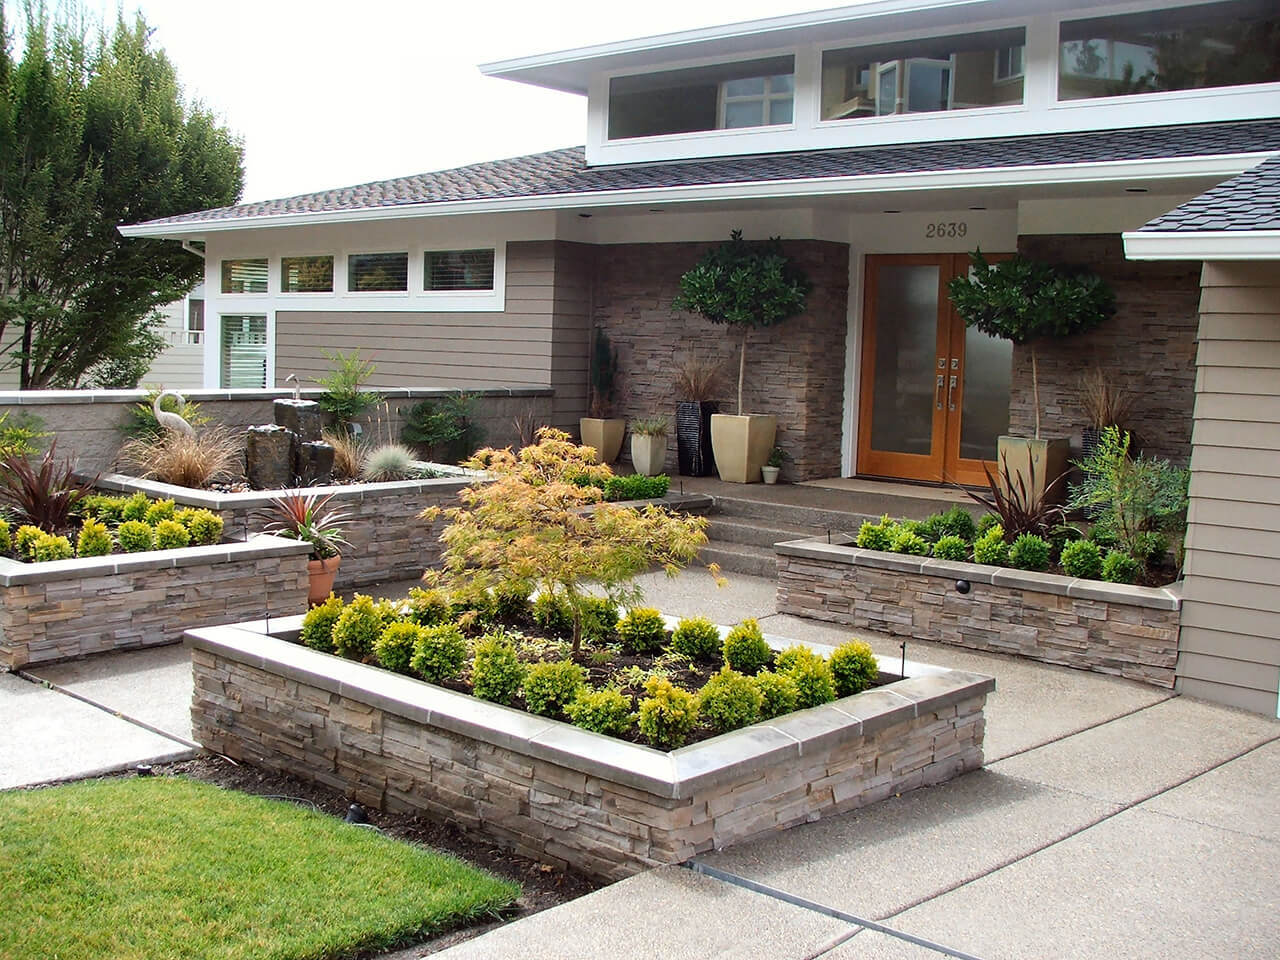 50 Best Front Yard Landscaping Ideas and Garden Designs ... on Patio And Grass Garden Ideas id=49191